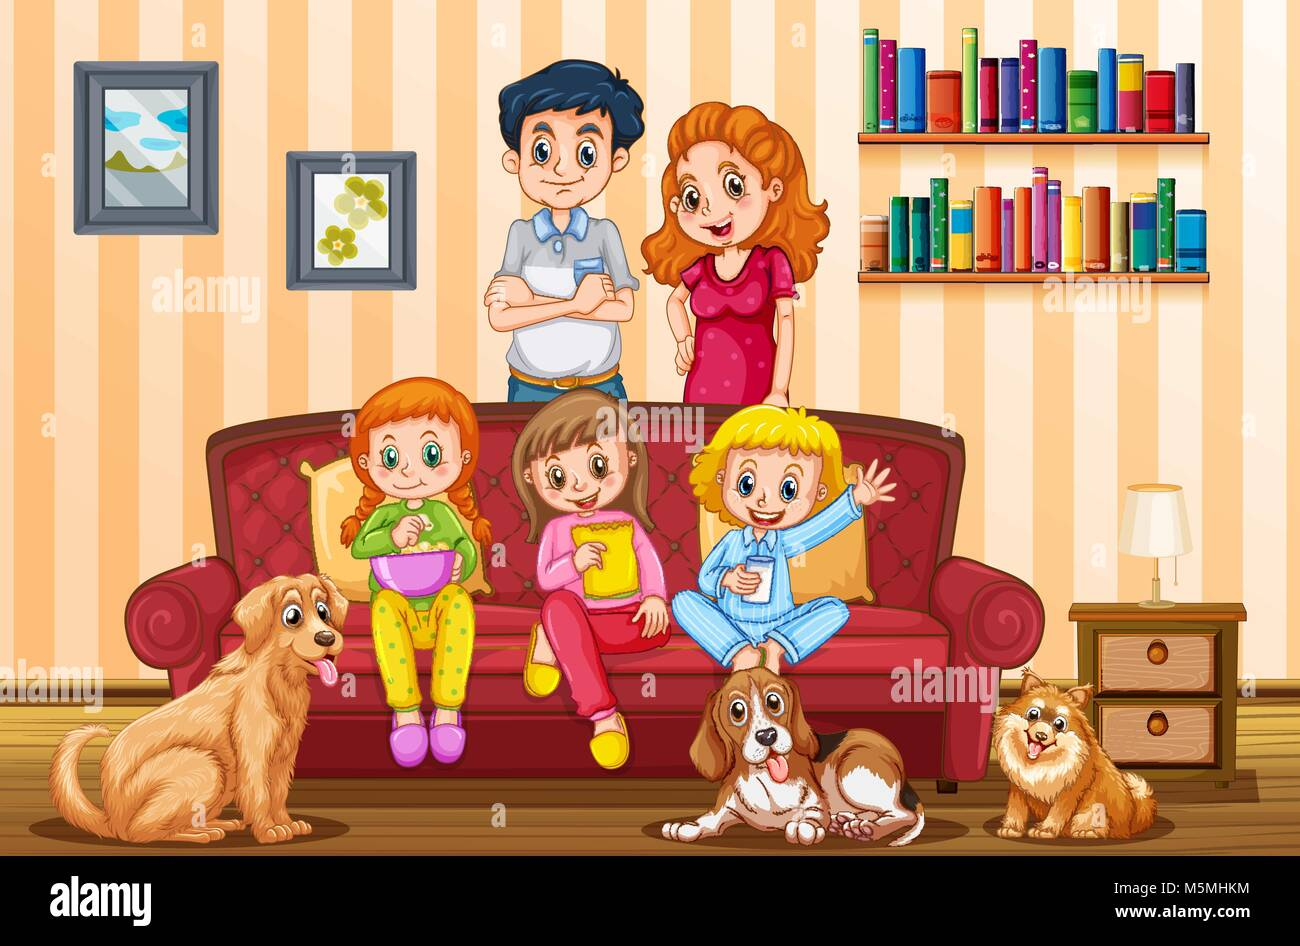 Family with three girls and dogs in livingroom illustration - Stock Vector